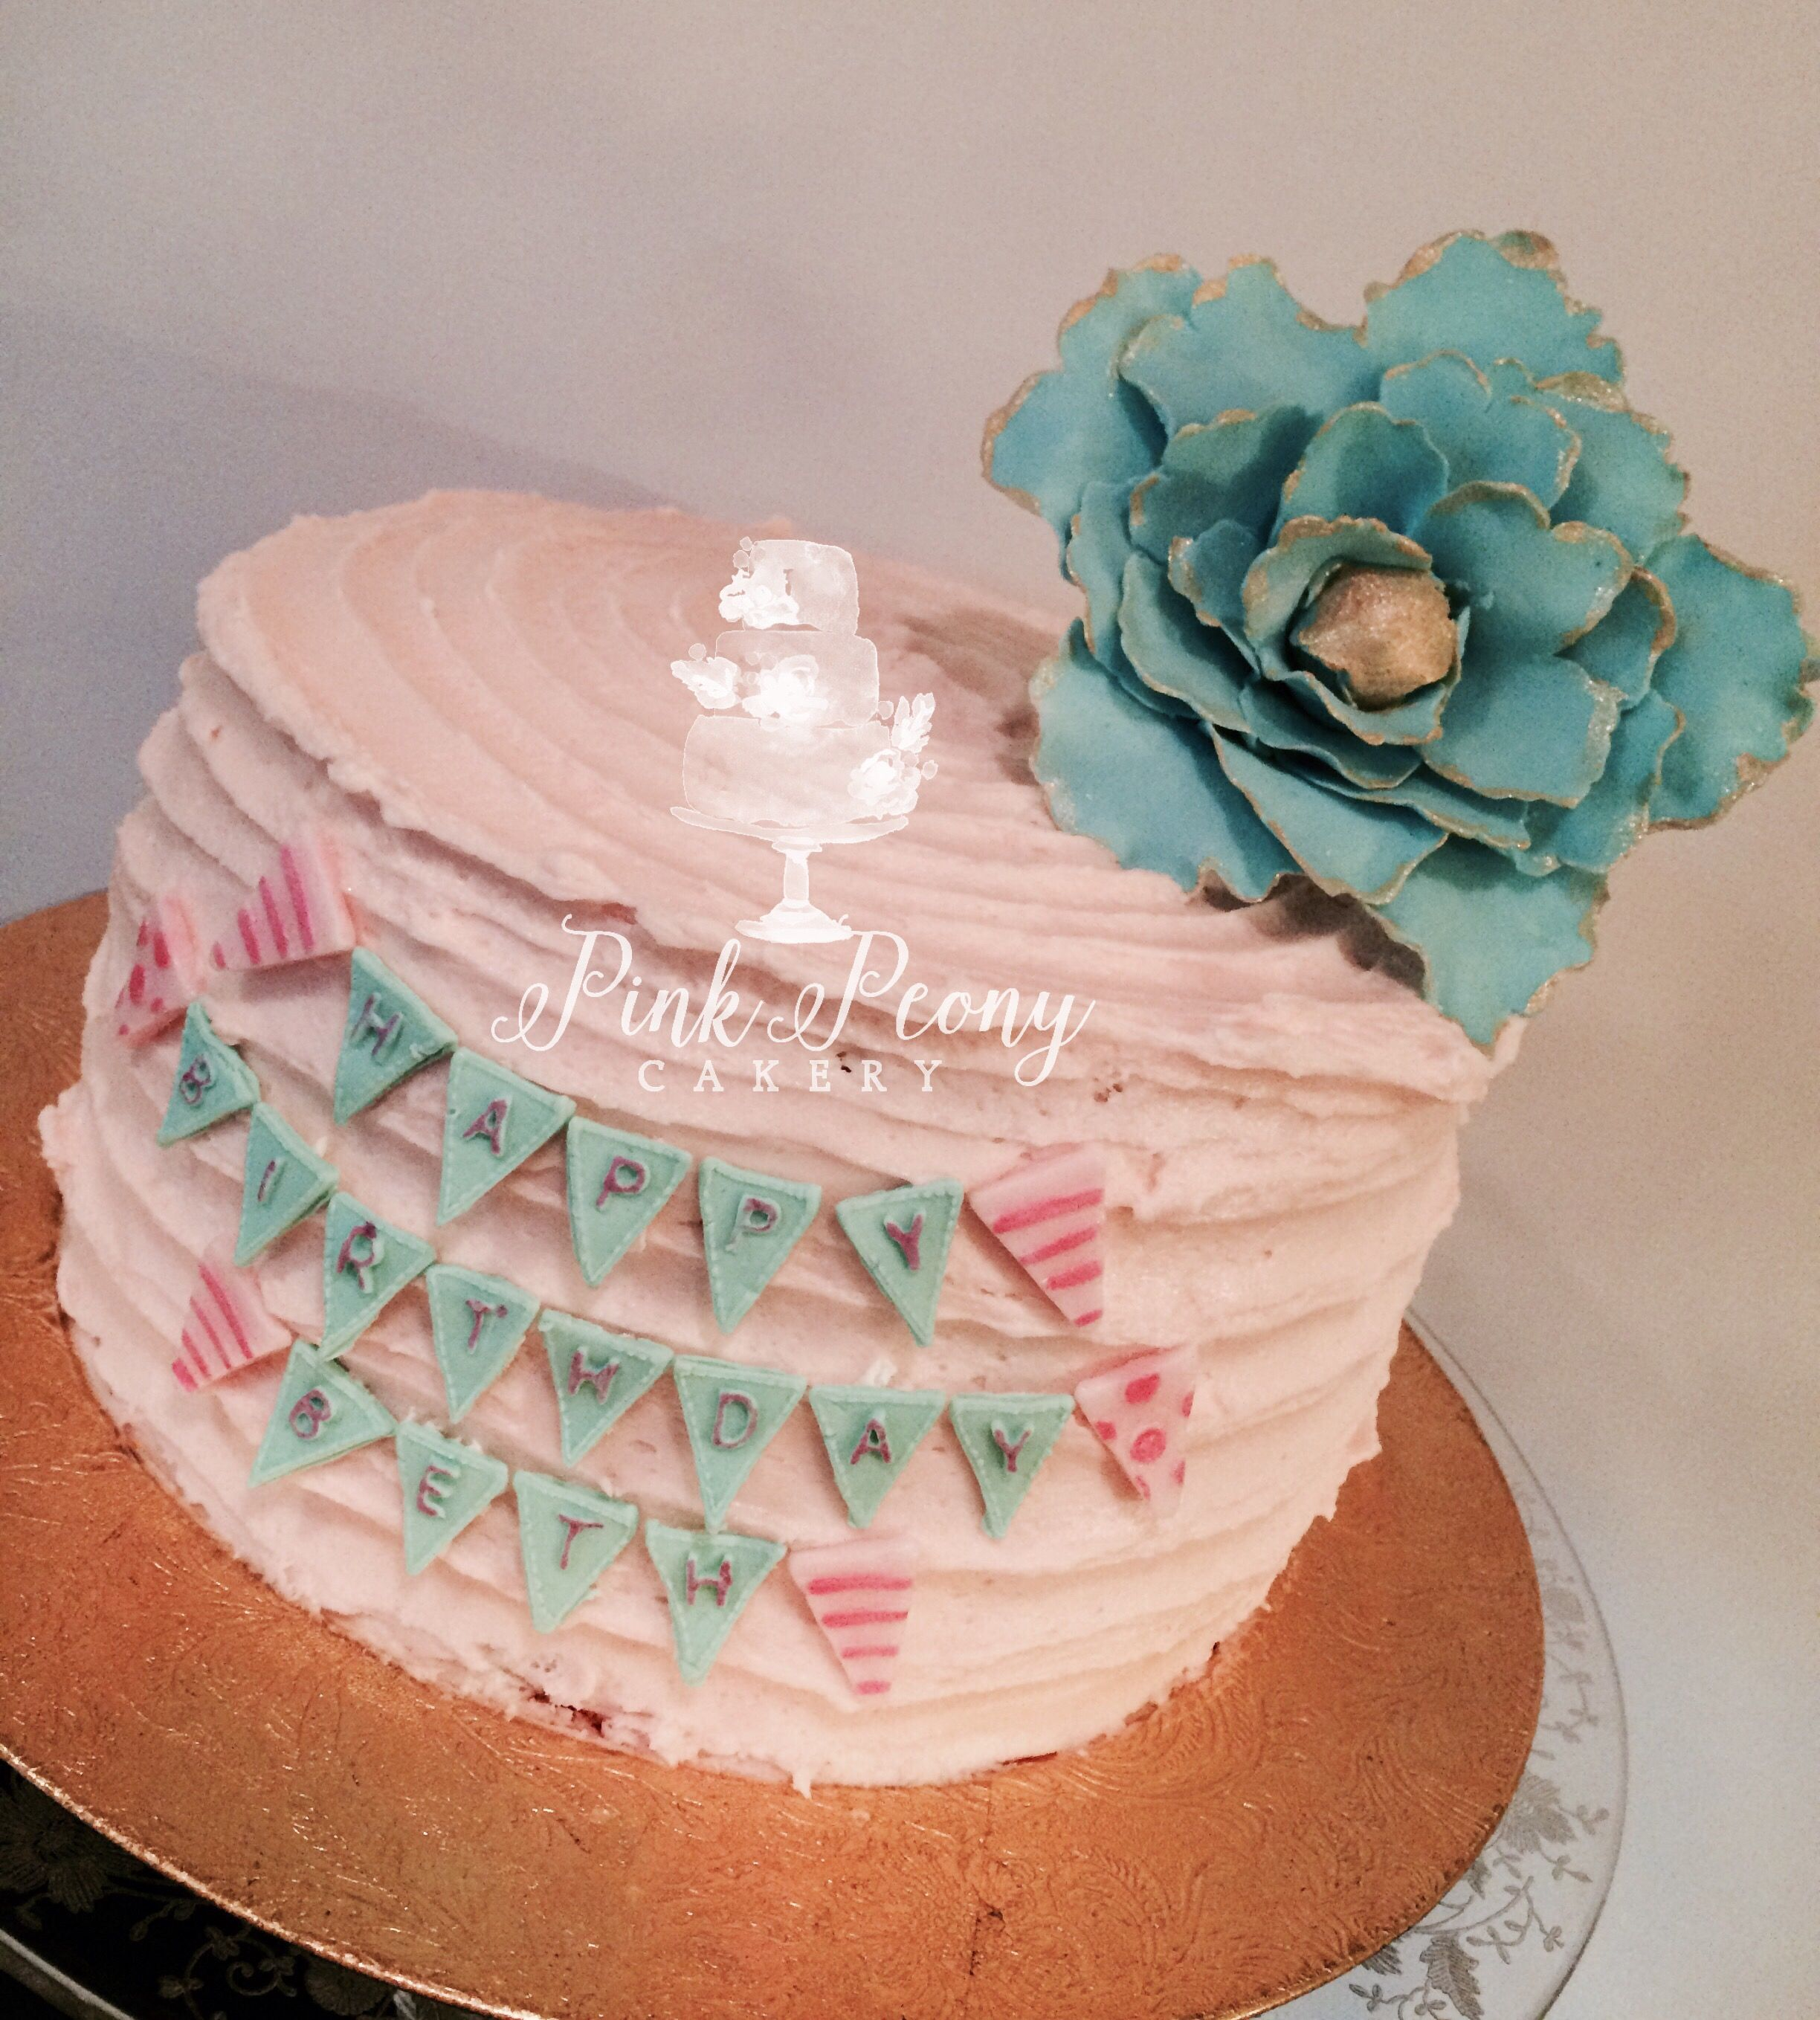 Shabby chic pink and turquoise birthday cake with gumpaste fantasy